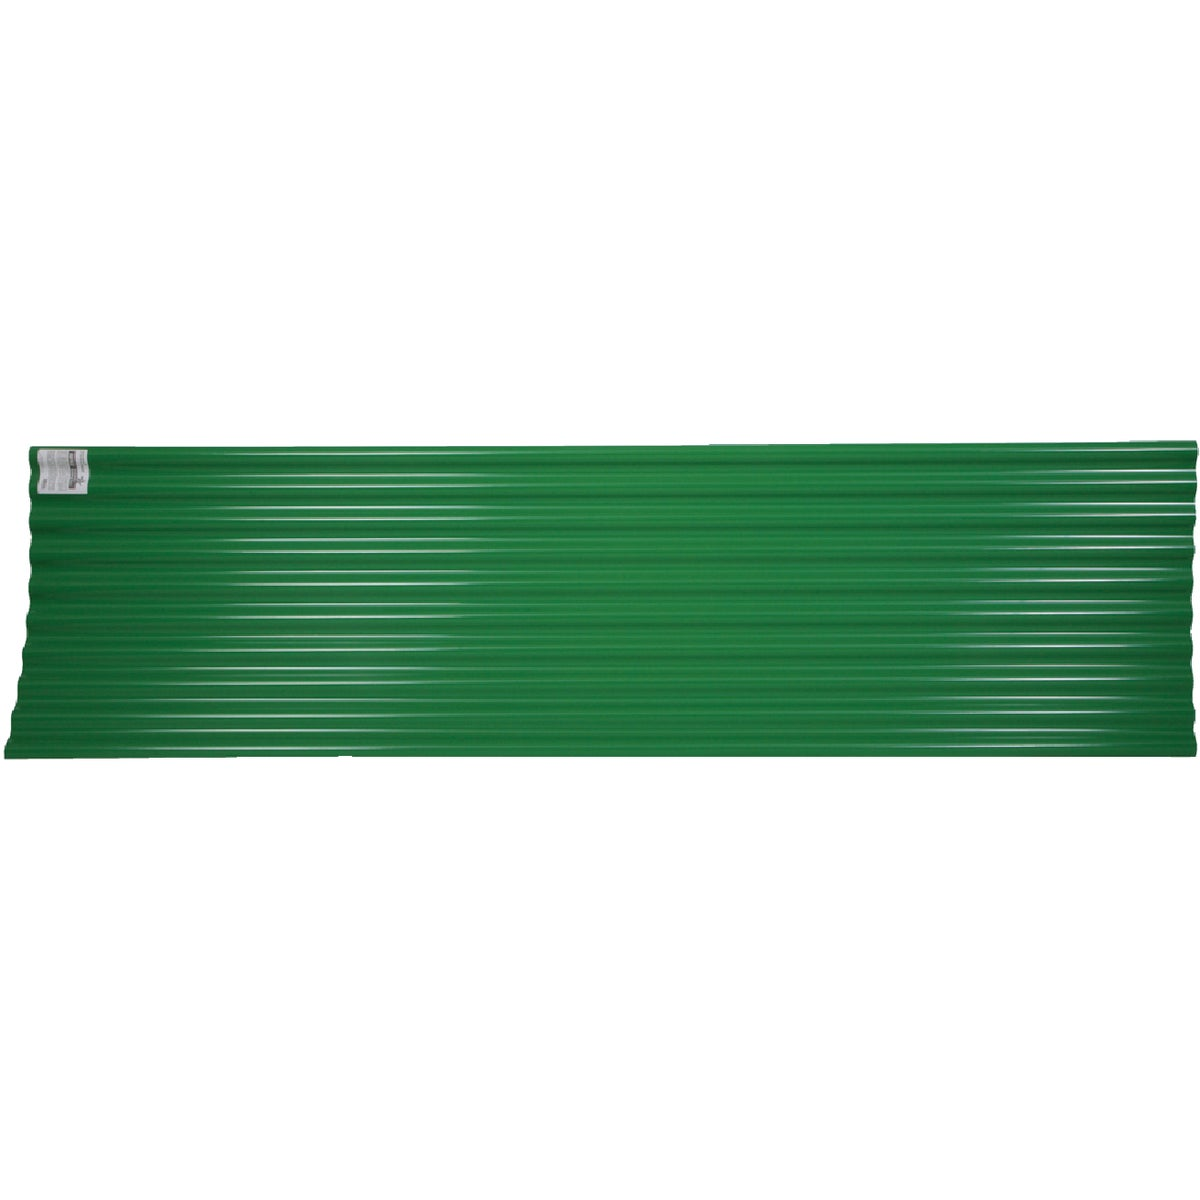 12' GRN CORGTD PVC PANEL - 120238 by Ofic North America